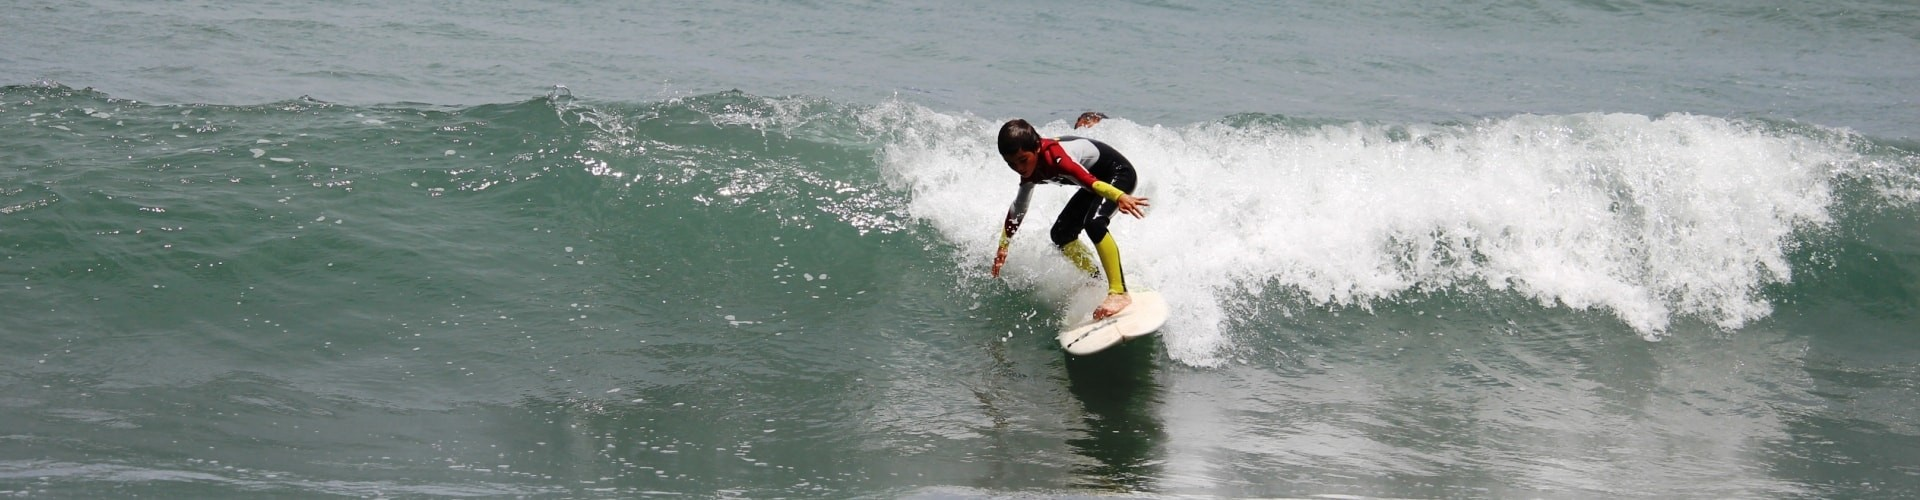 Surf Experiences in Madeira Island